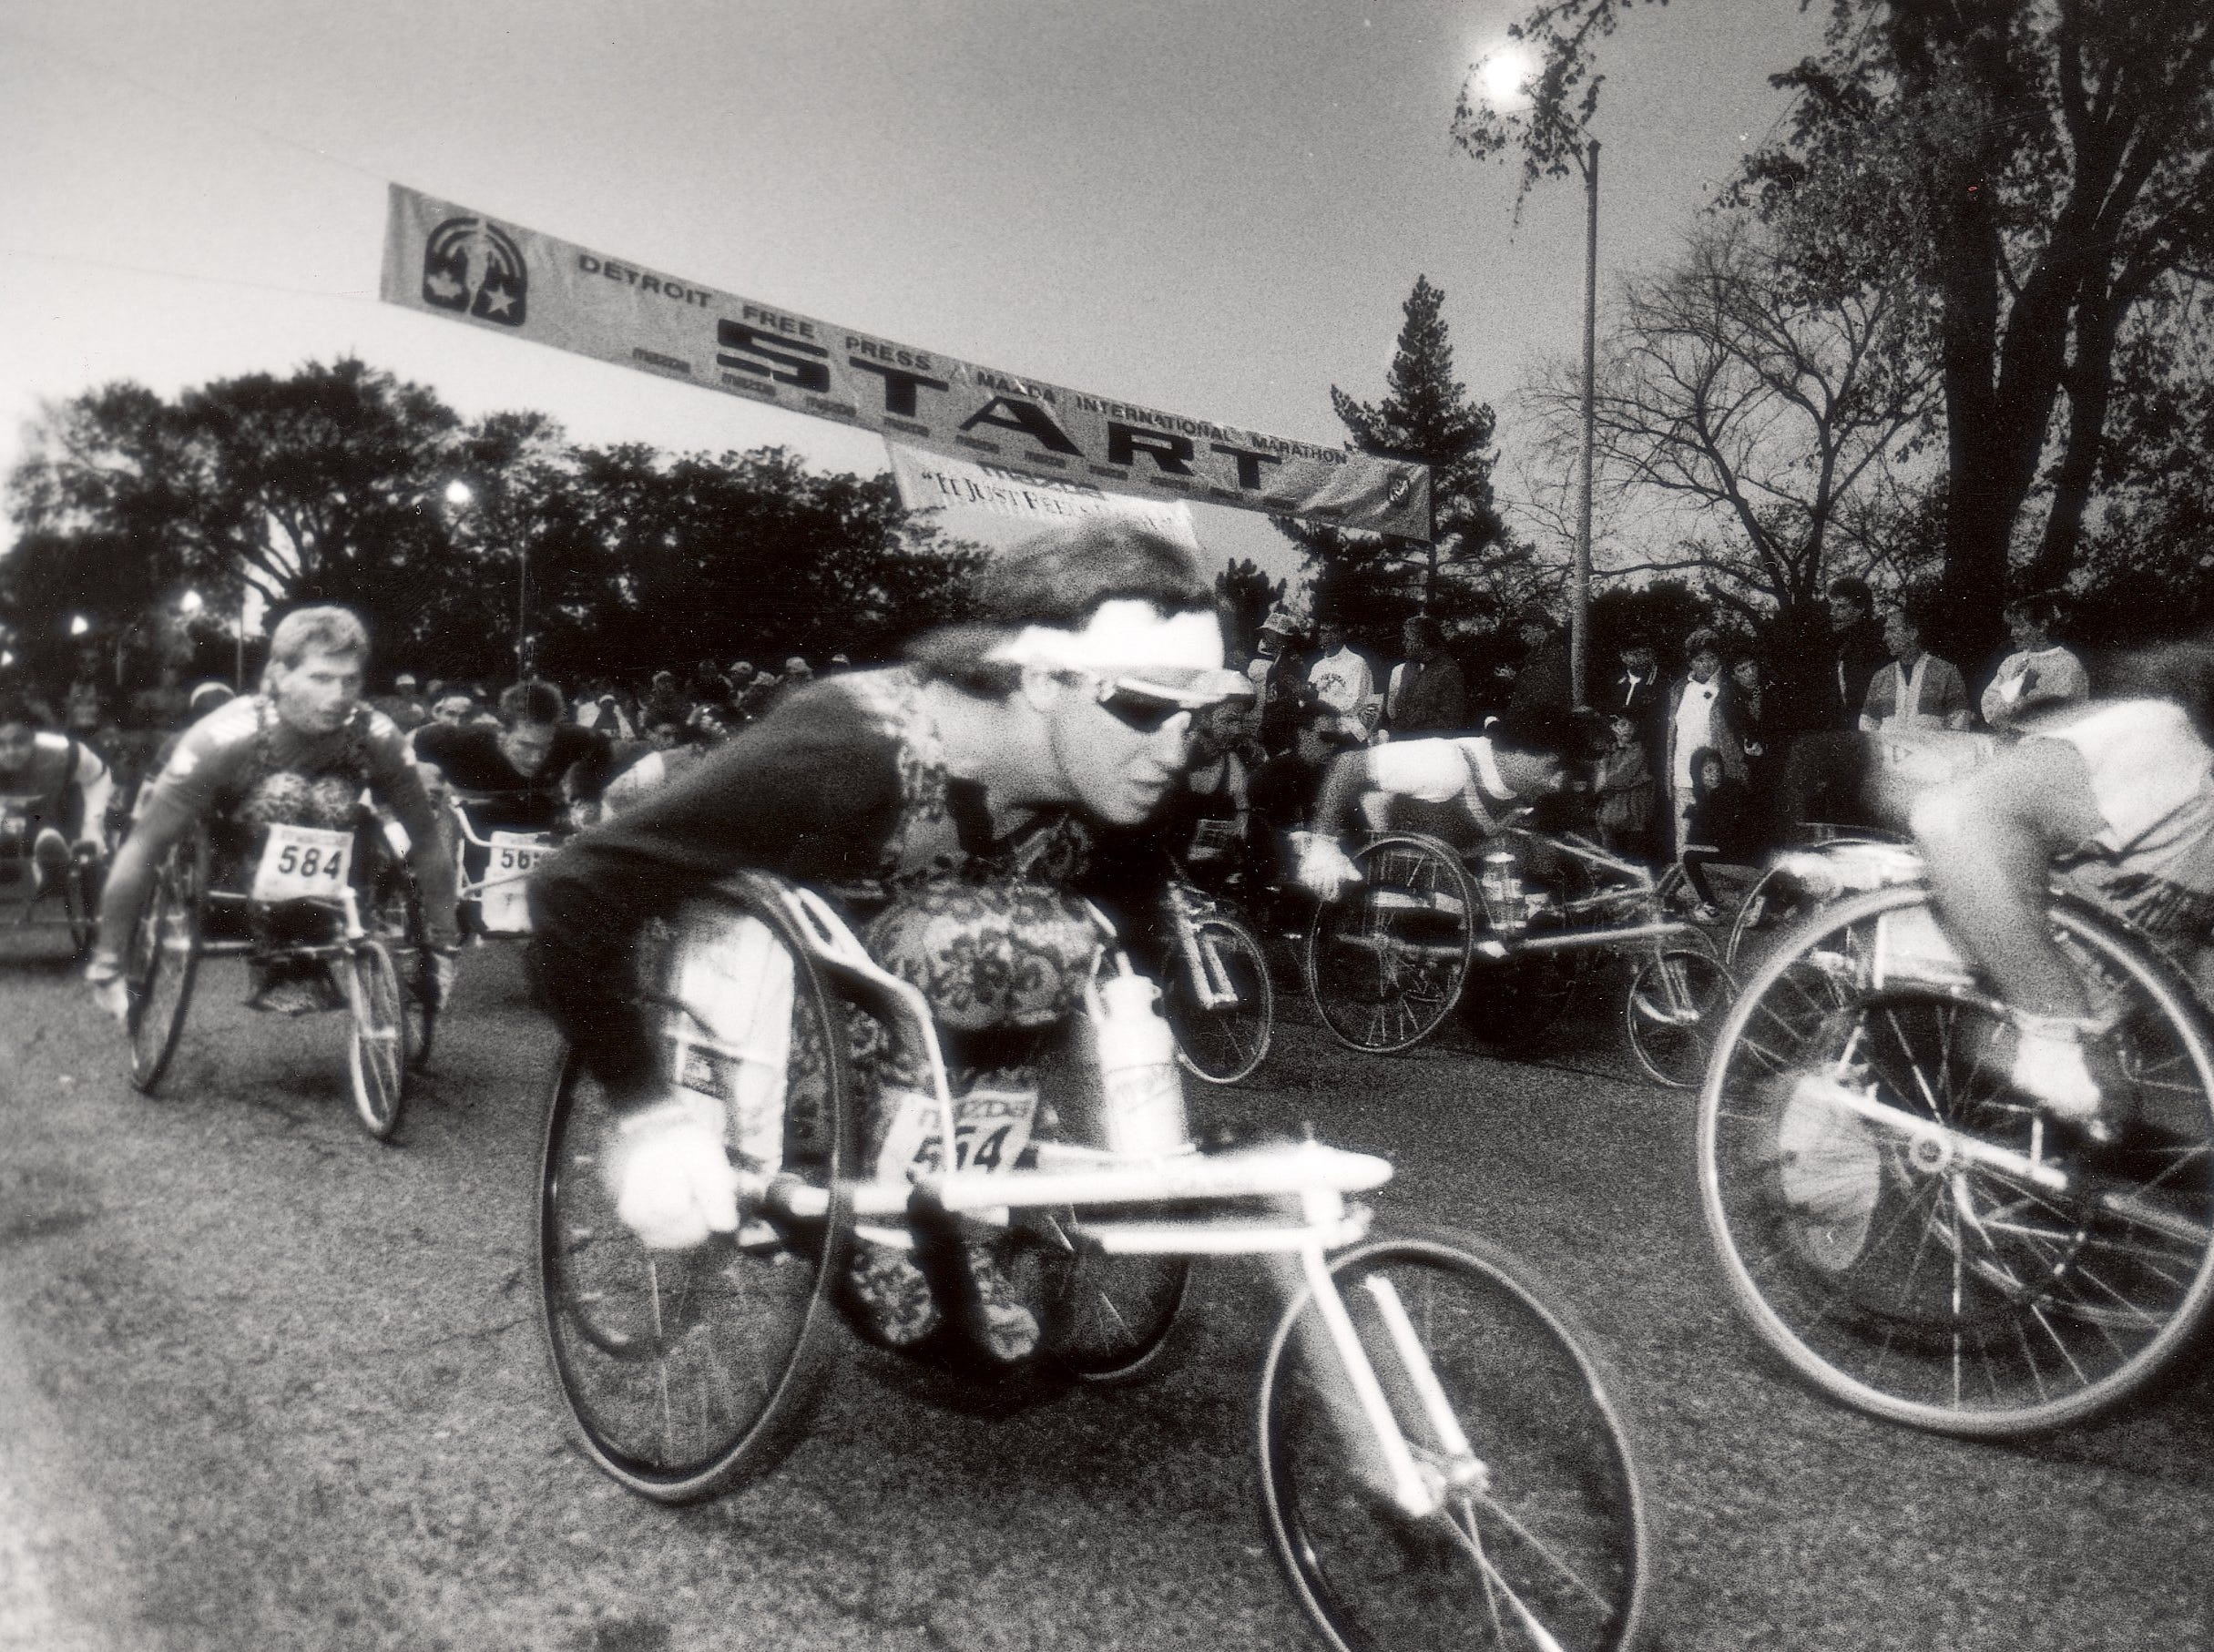 The start of the wheelchair and race walkers portion of the Free Press Marathon. They started 30 minutes before the other racers in 1990.